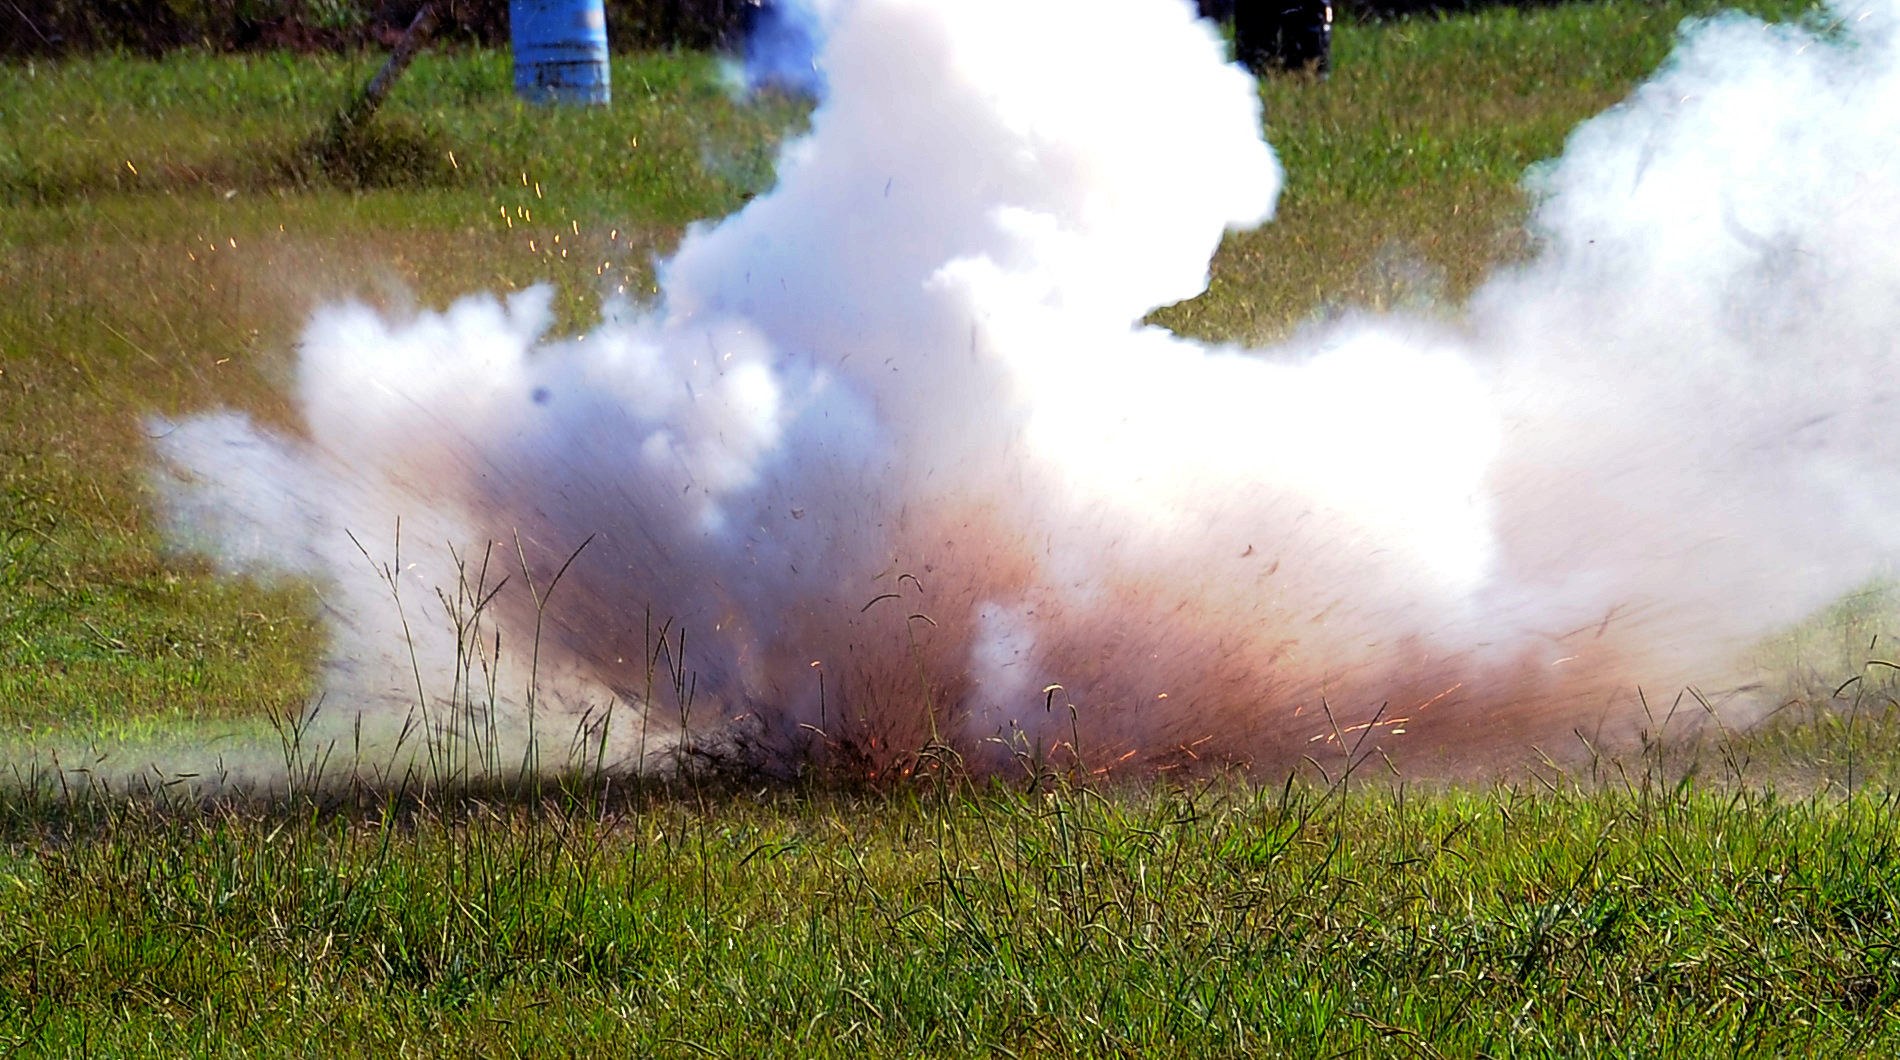 Grenade explosion at Trincomalee Air Force firing range